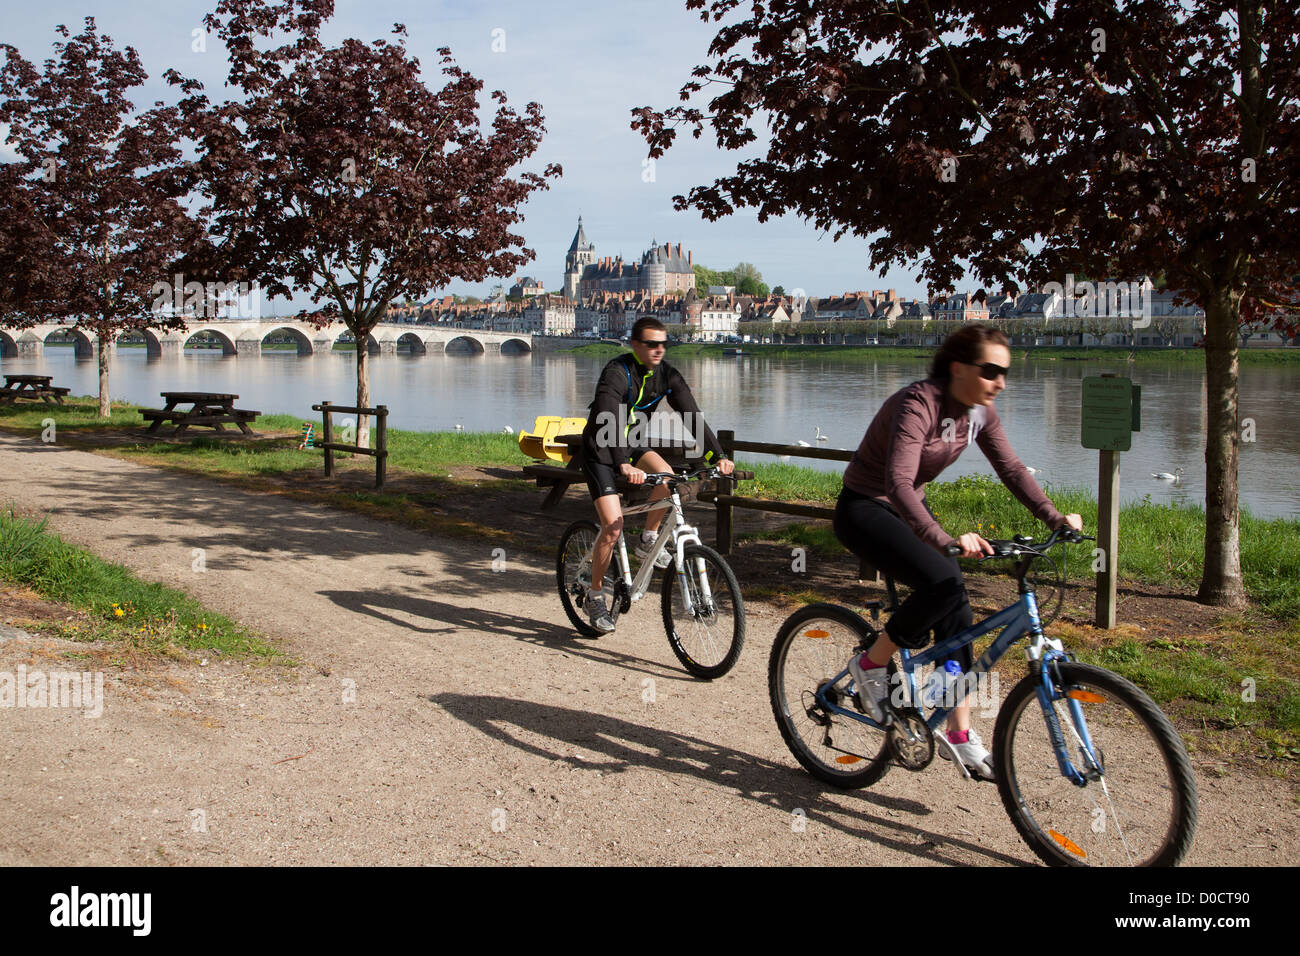 CYCLISTS ON THE 'LOIRE A VELO' CYCLING ITINERARY TOWN OF GIEN LOIRET (45) FRANCE - Stock Image